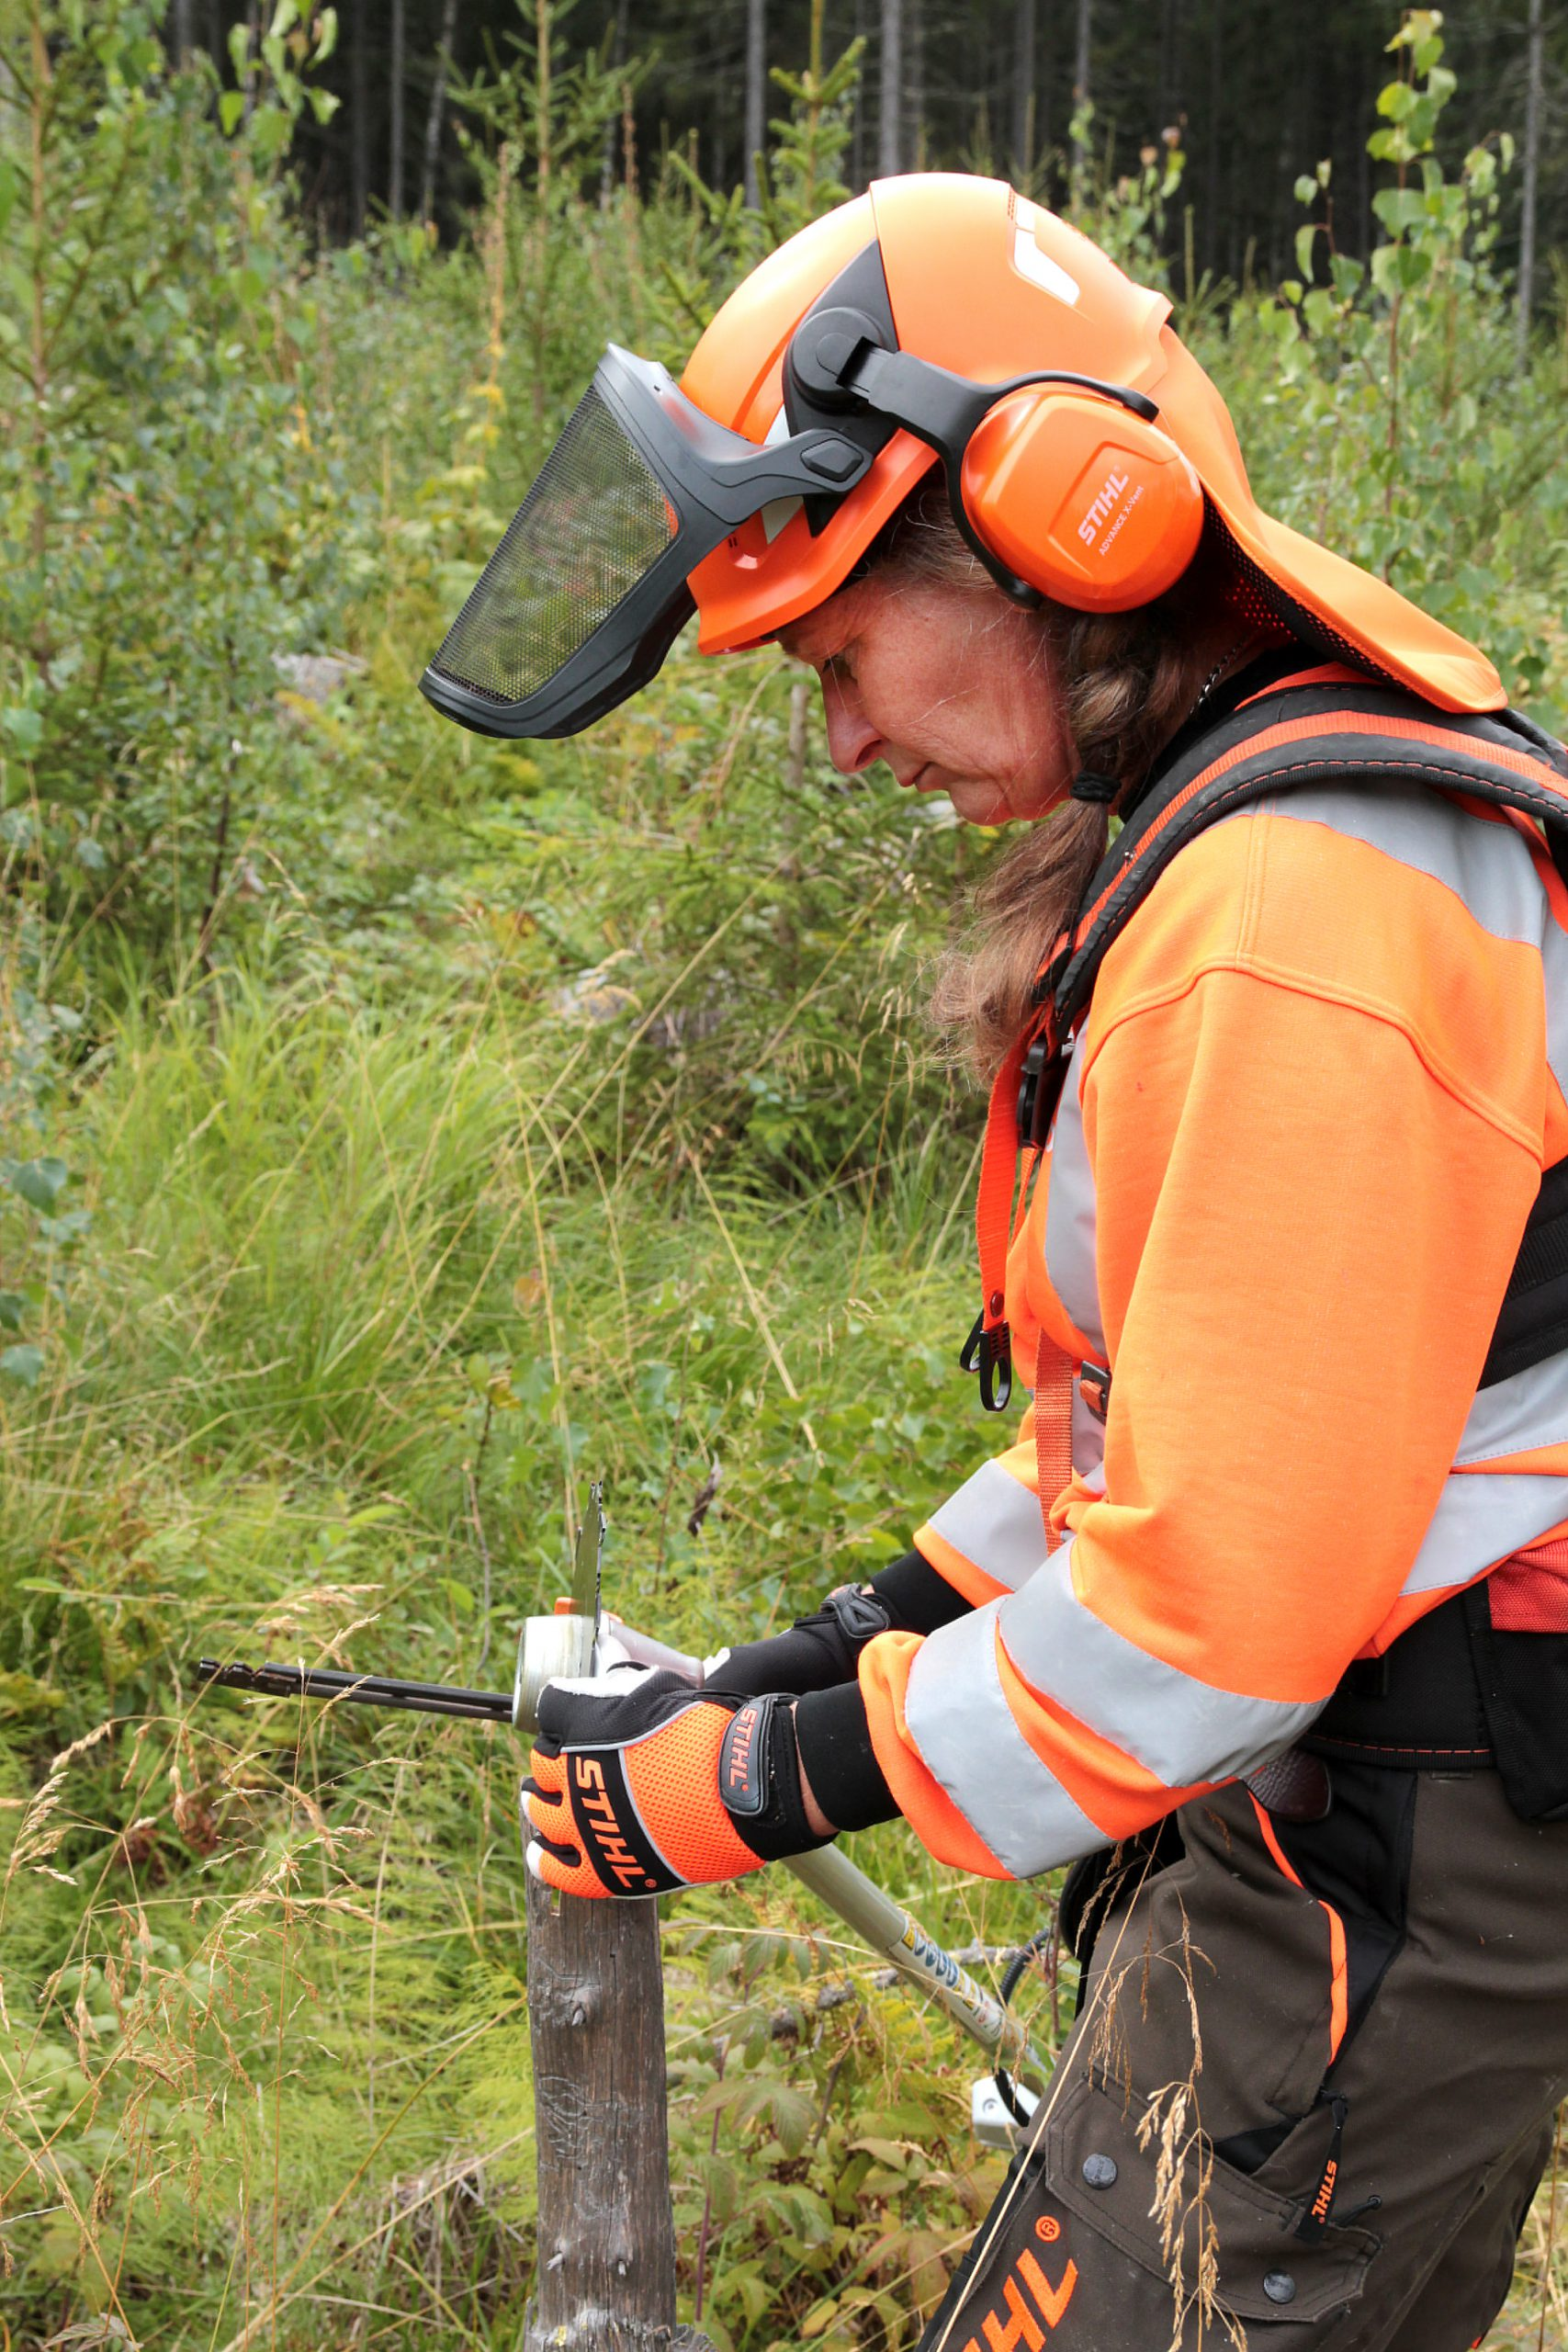 Woman in forest wearing orange protection gear. Photo.